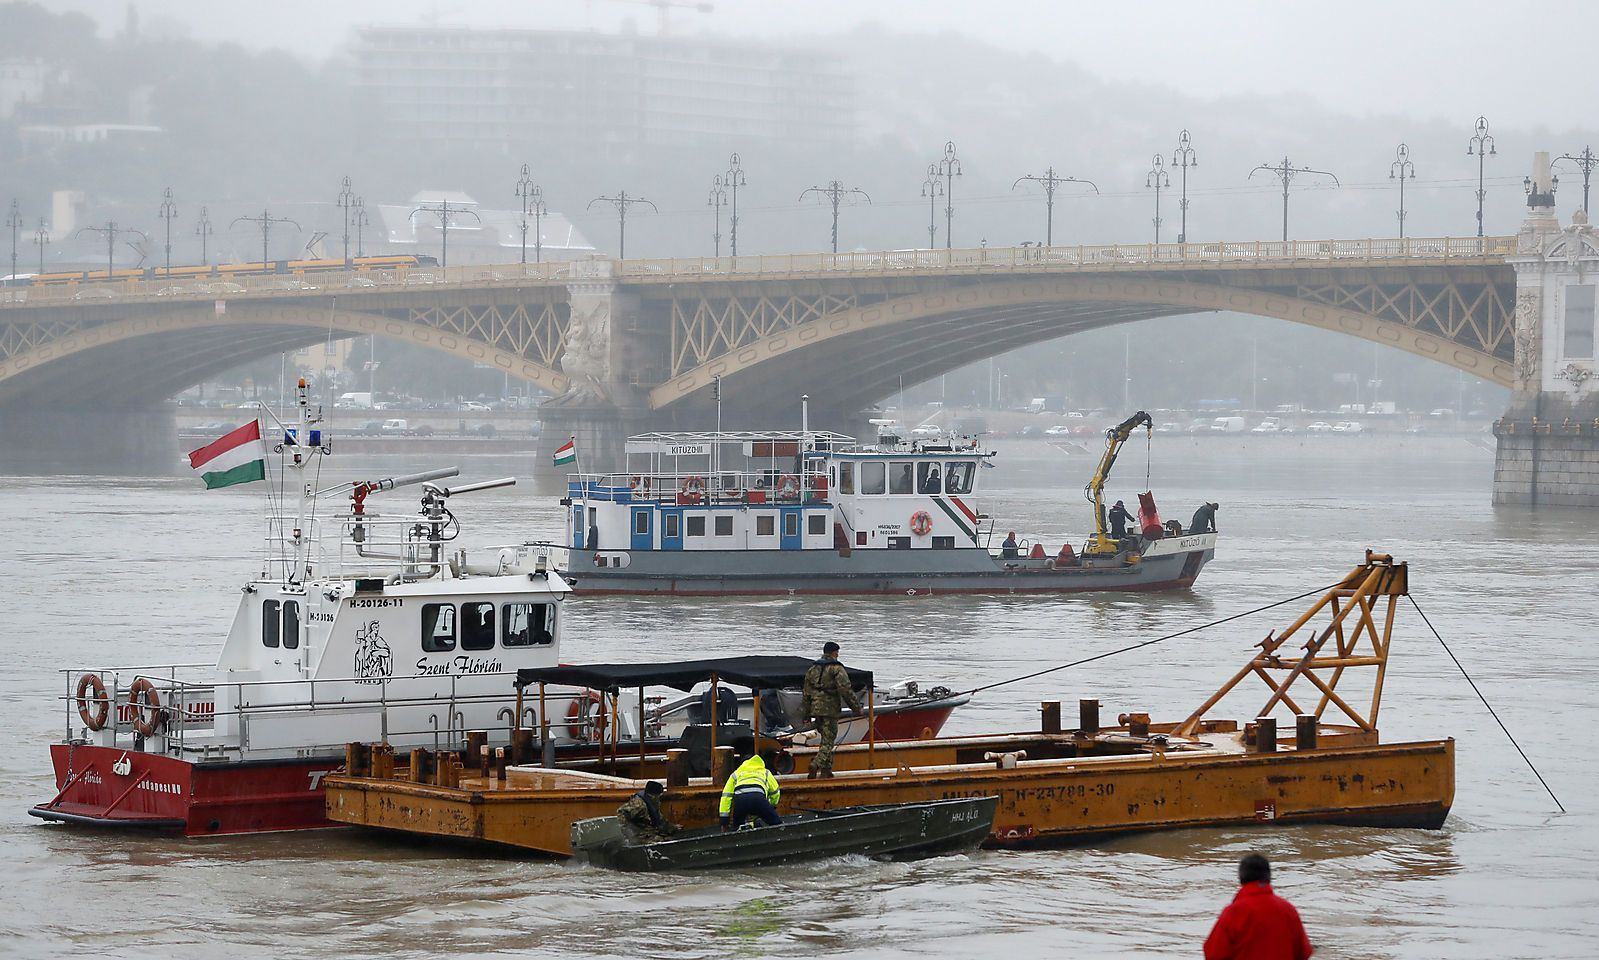 Ship accident on the Danube river in Budapest